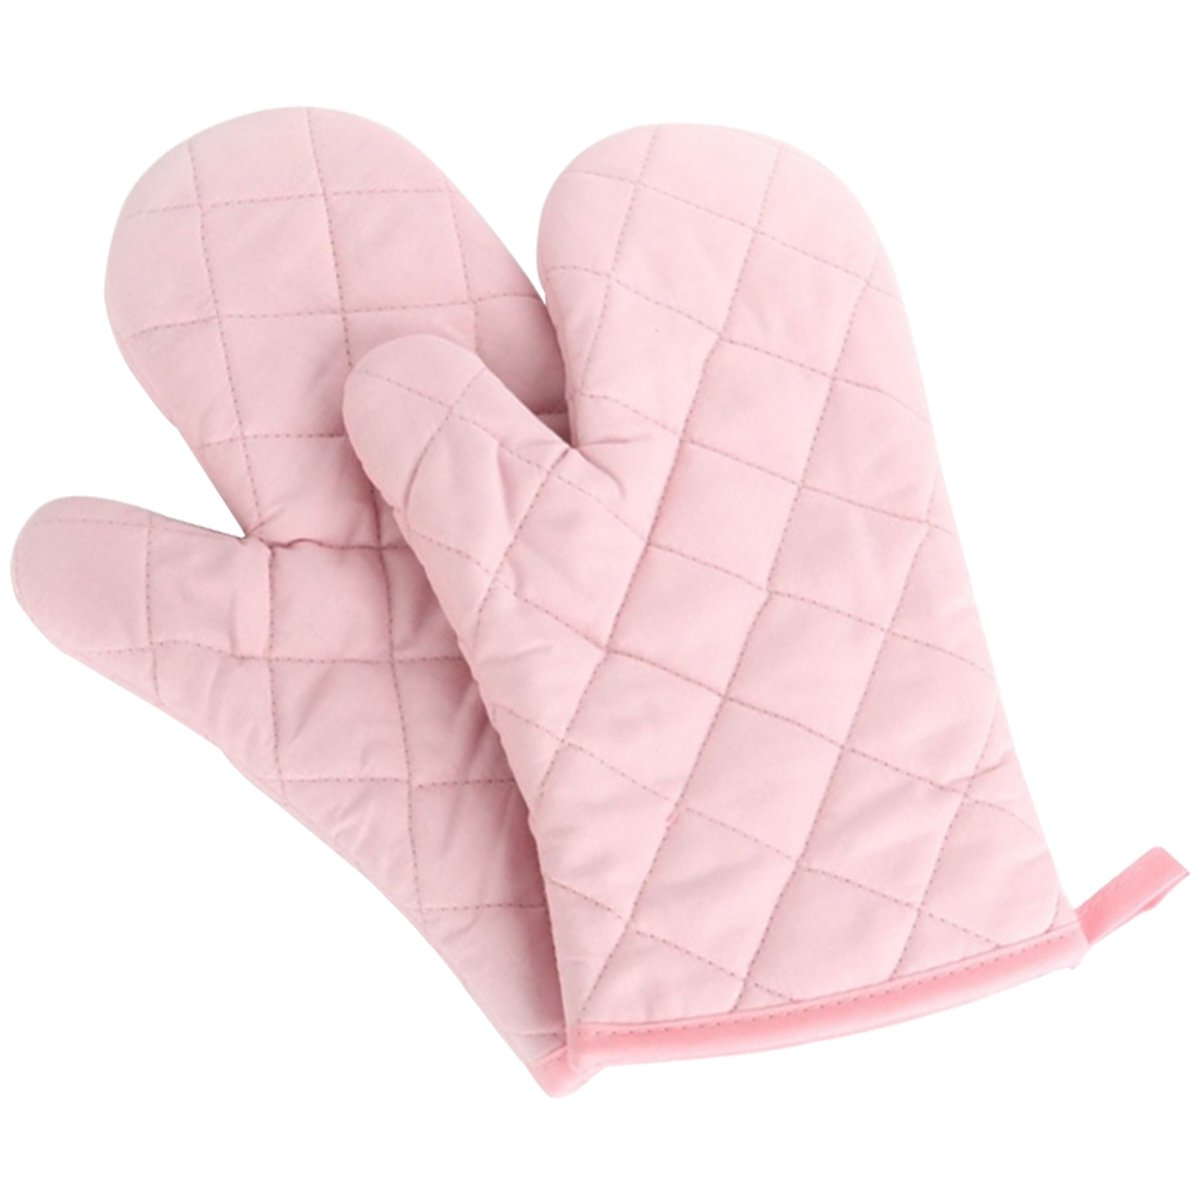 Artmoki Oven Mitts Heat Resistant Baking BBQ Set of 2 Oven Gloves Cooking Grilling High Temperature Hand Protection, 11 X 5.9 Inches - Pink